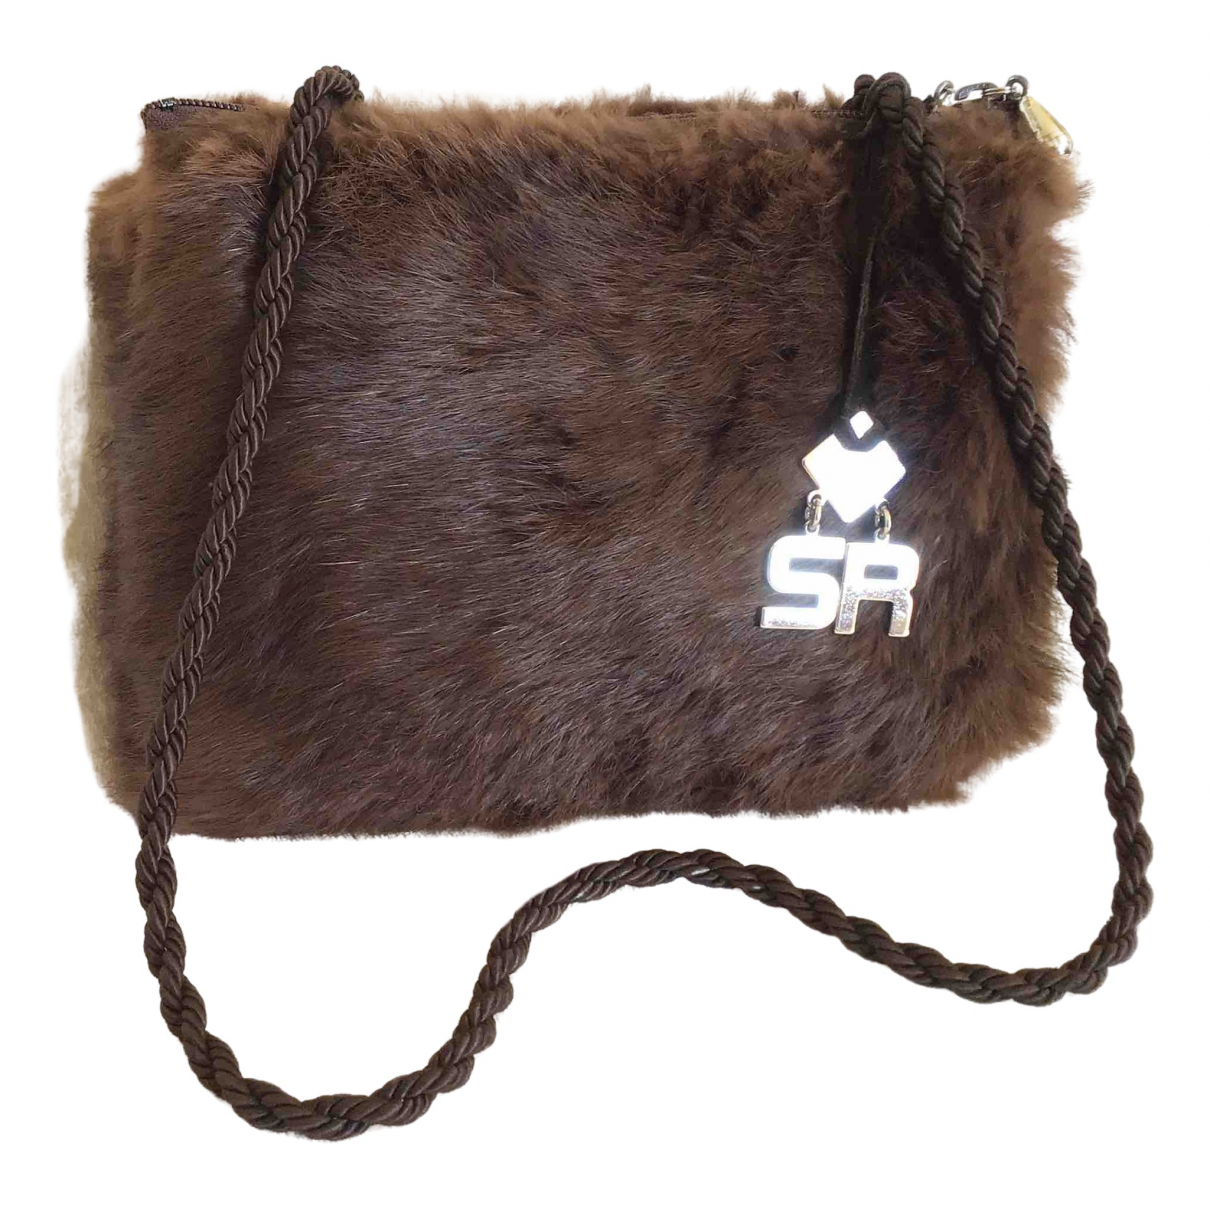 Sonia Rykiel \N Brown Rabbit handbag for Women \N